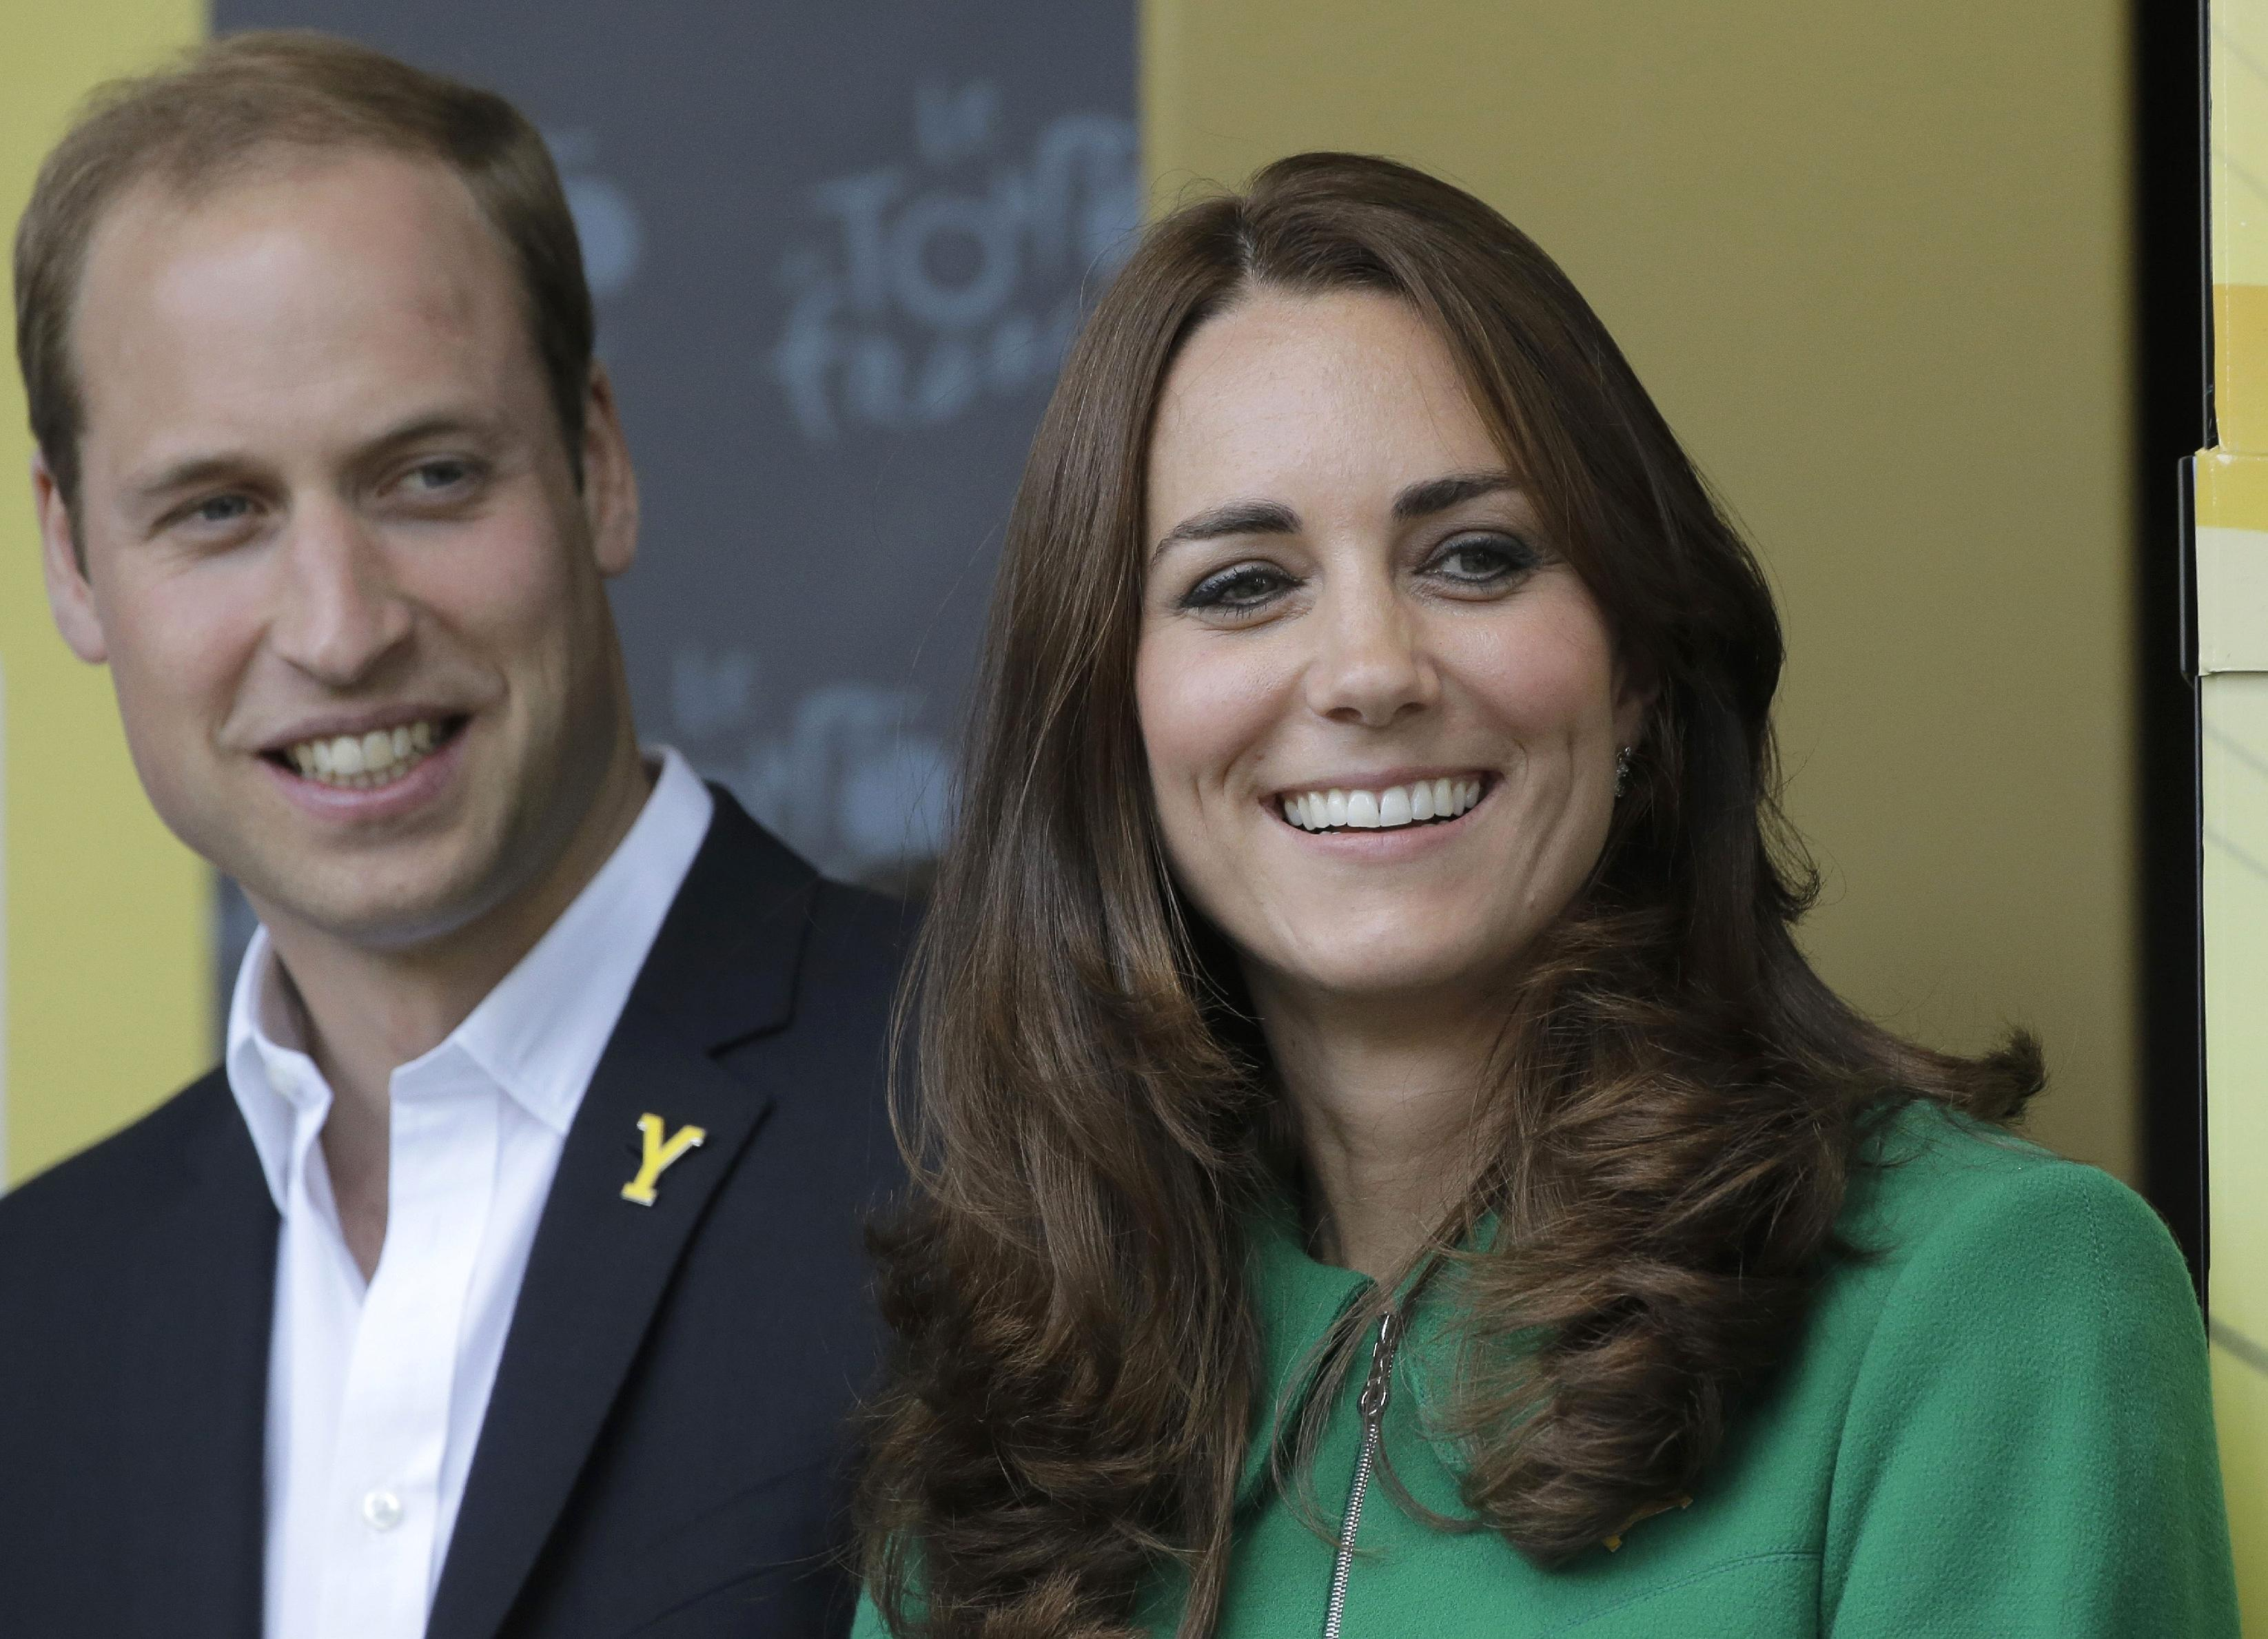 Prince William and Kate face transition: new baby, new job